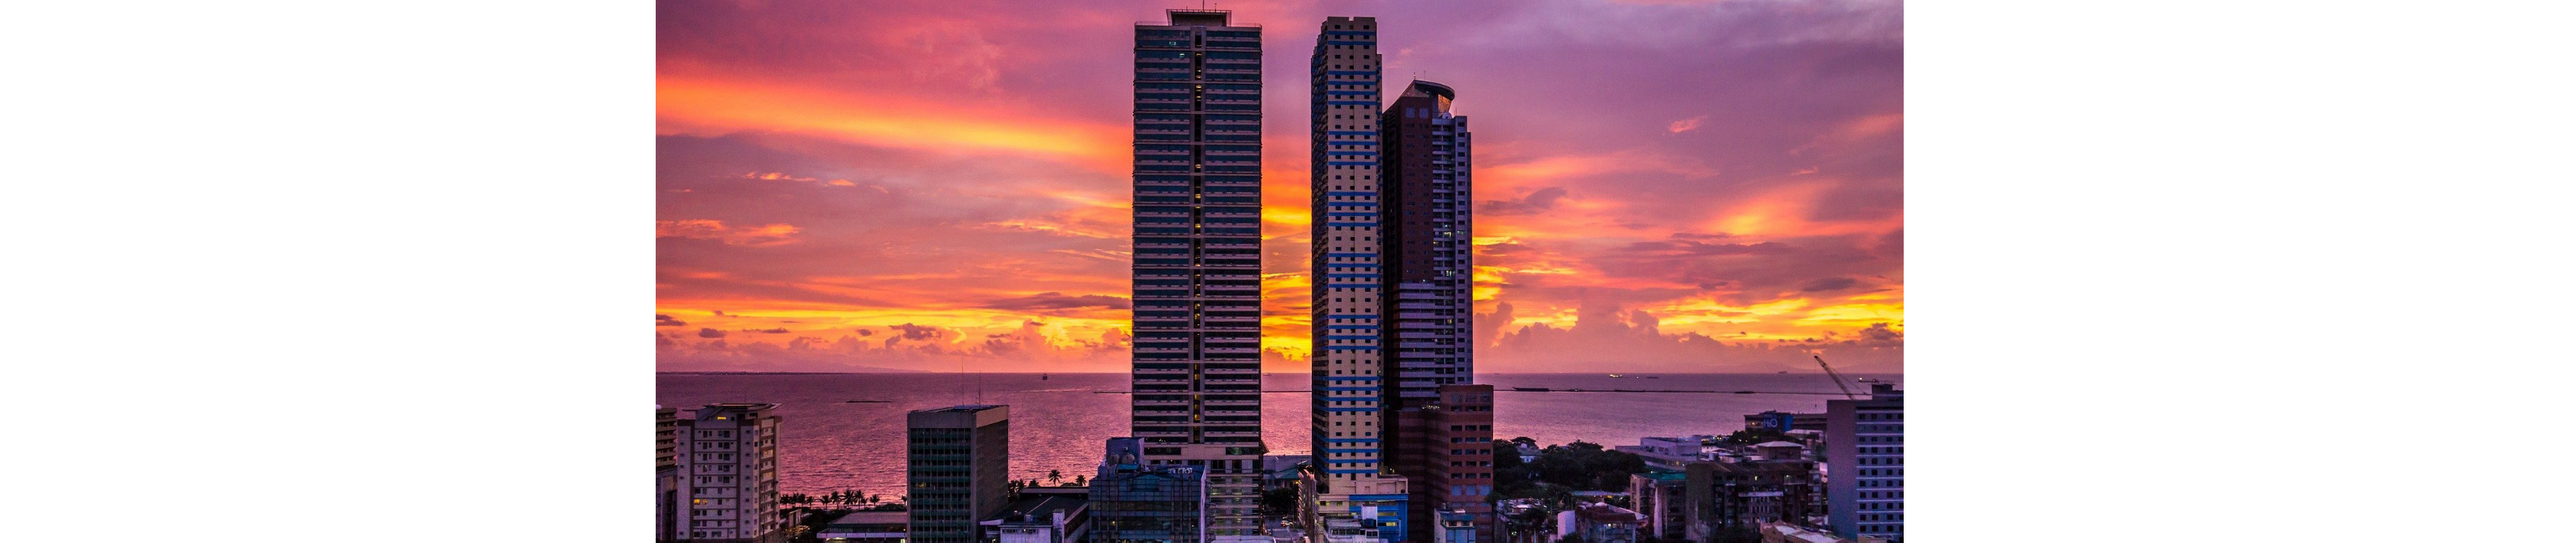 Photom of buildings and skyline in Manila at sunset